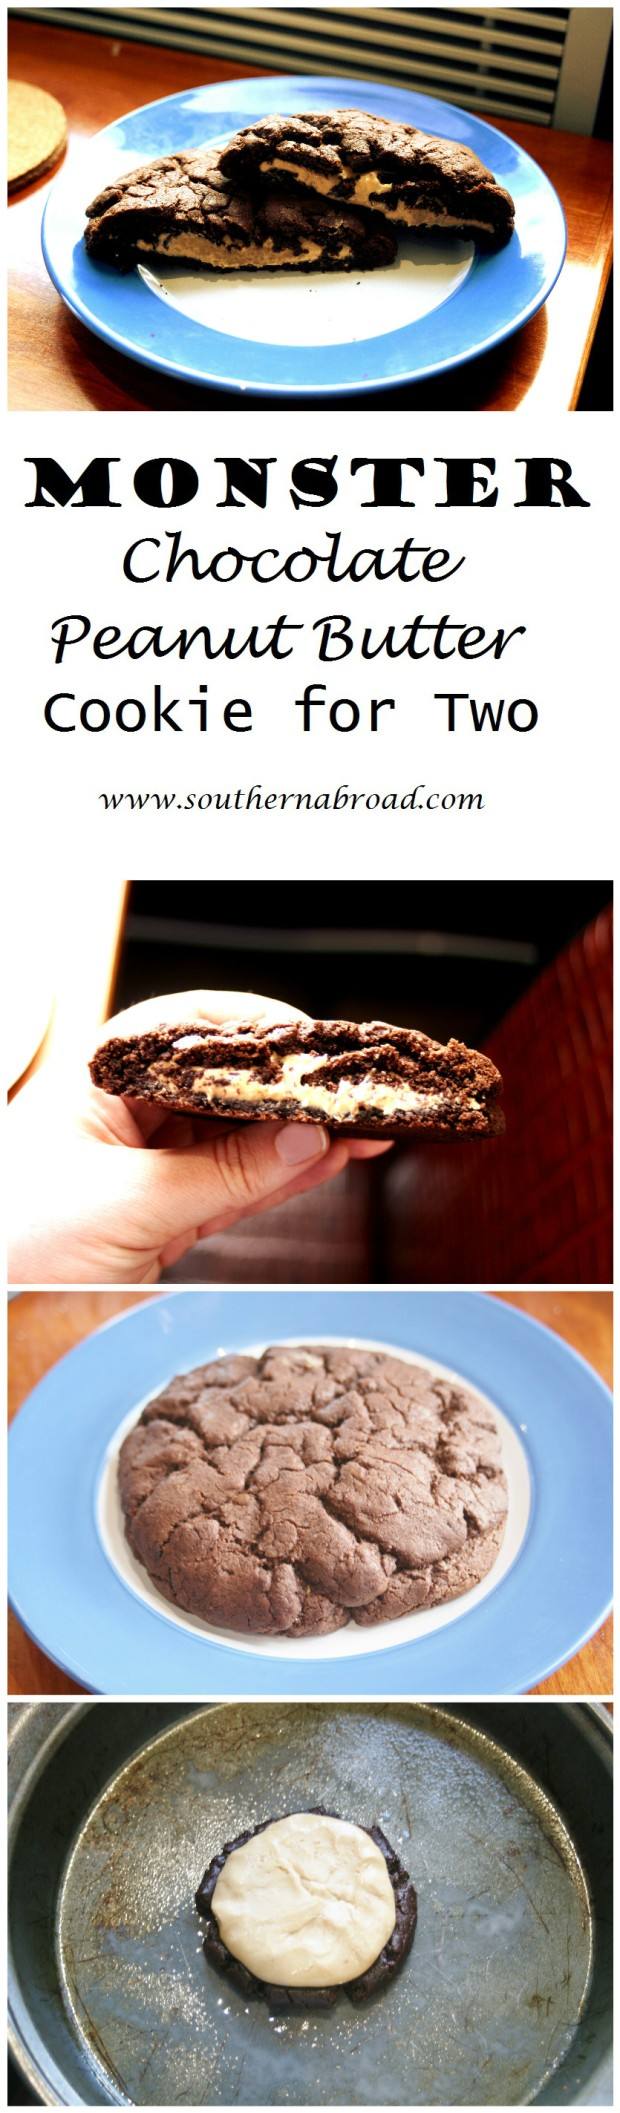 Monster Chocolate Peanut Butter Cookie For Two